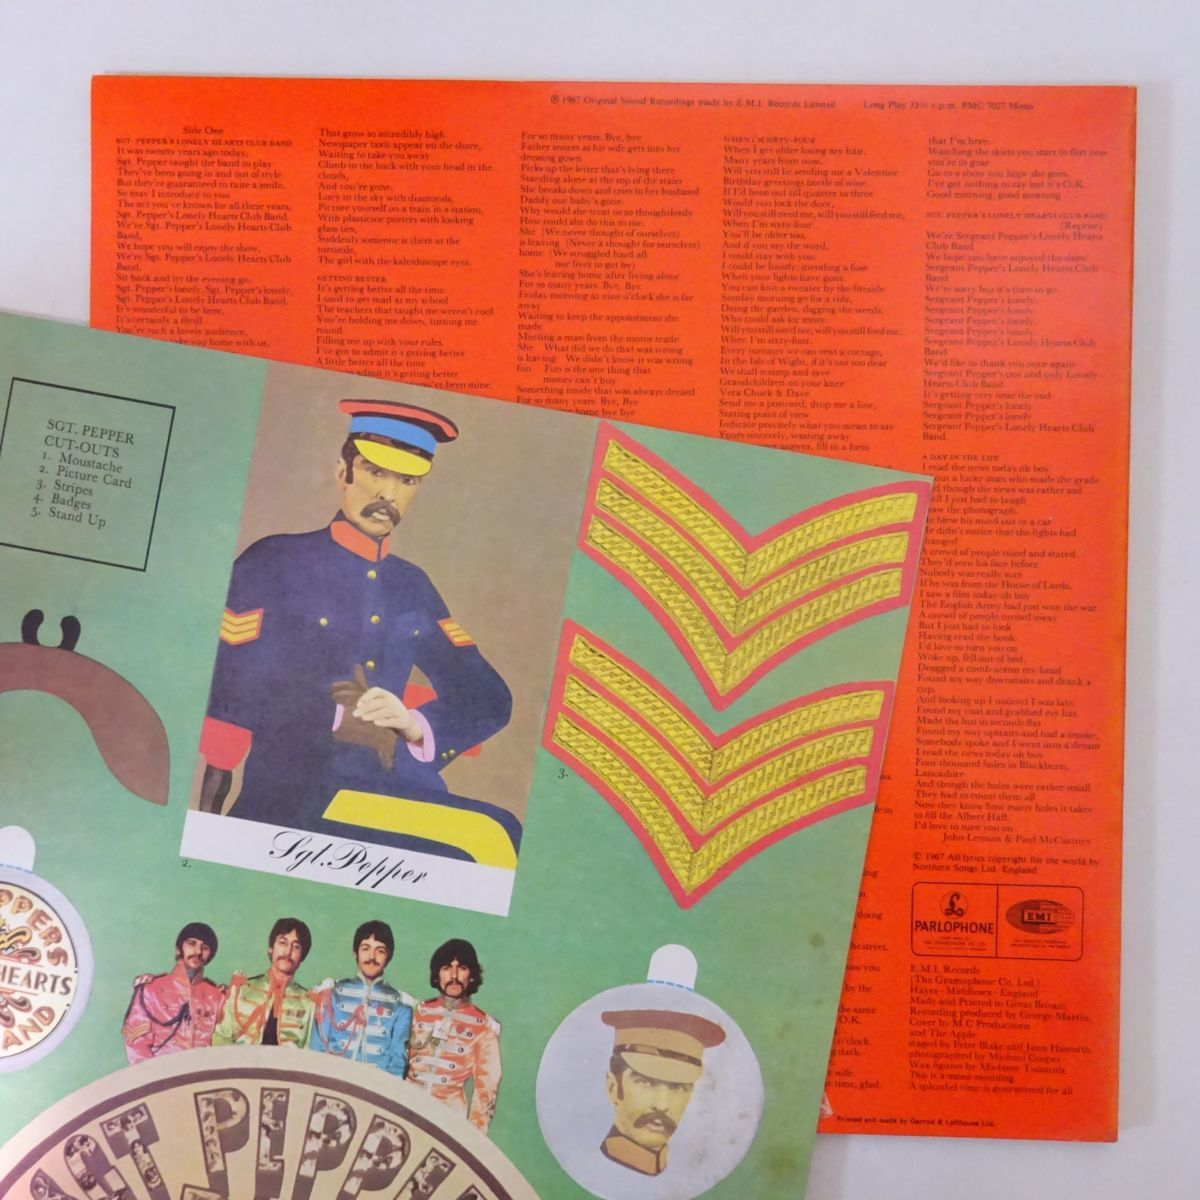 13036225;【UK盤/MONO/美盤】The Beatles / Sgt. Pepper's Lonely Hearts Club Band_画像2